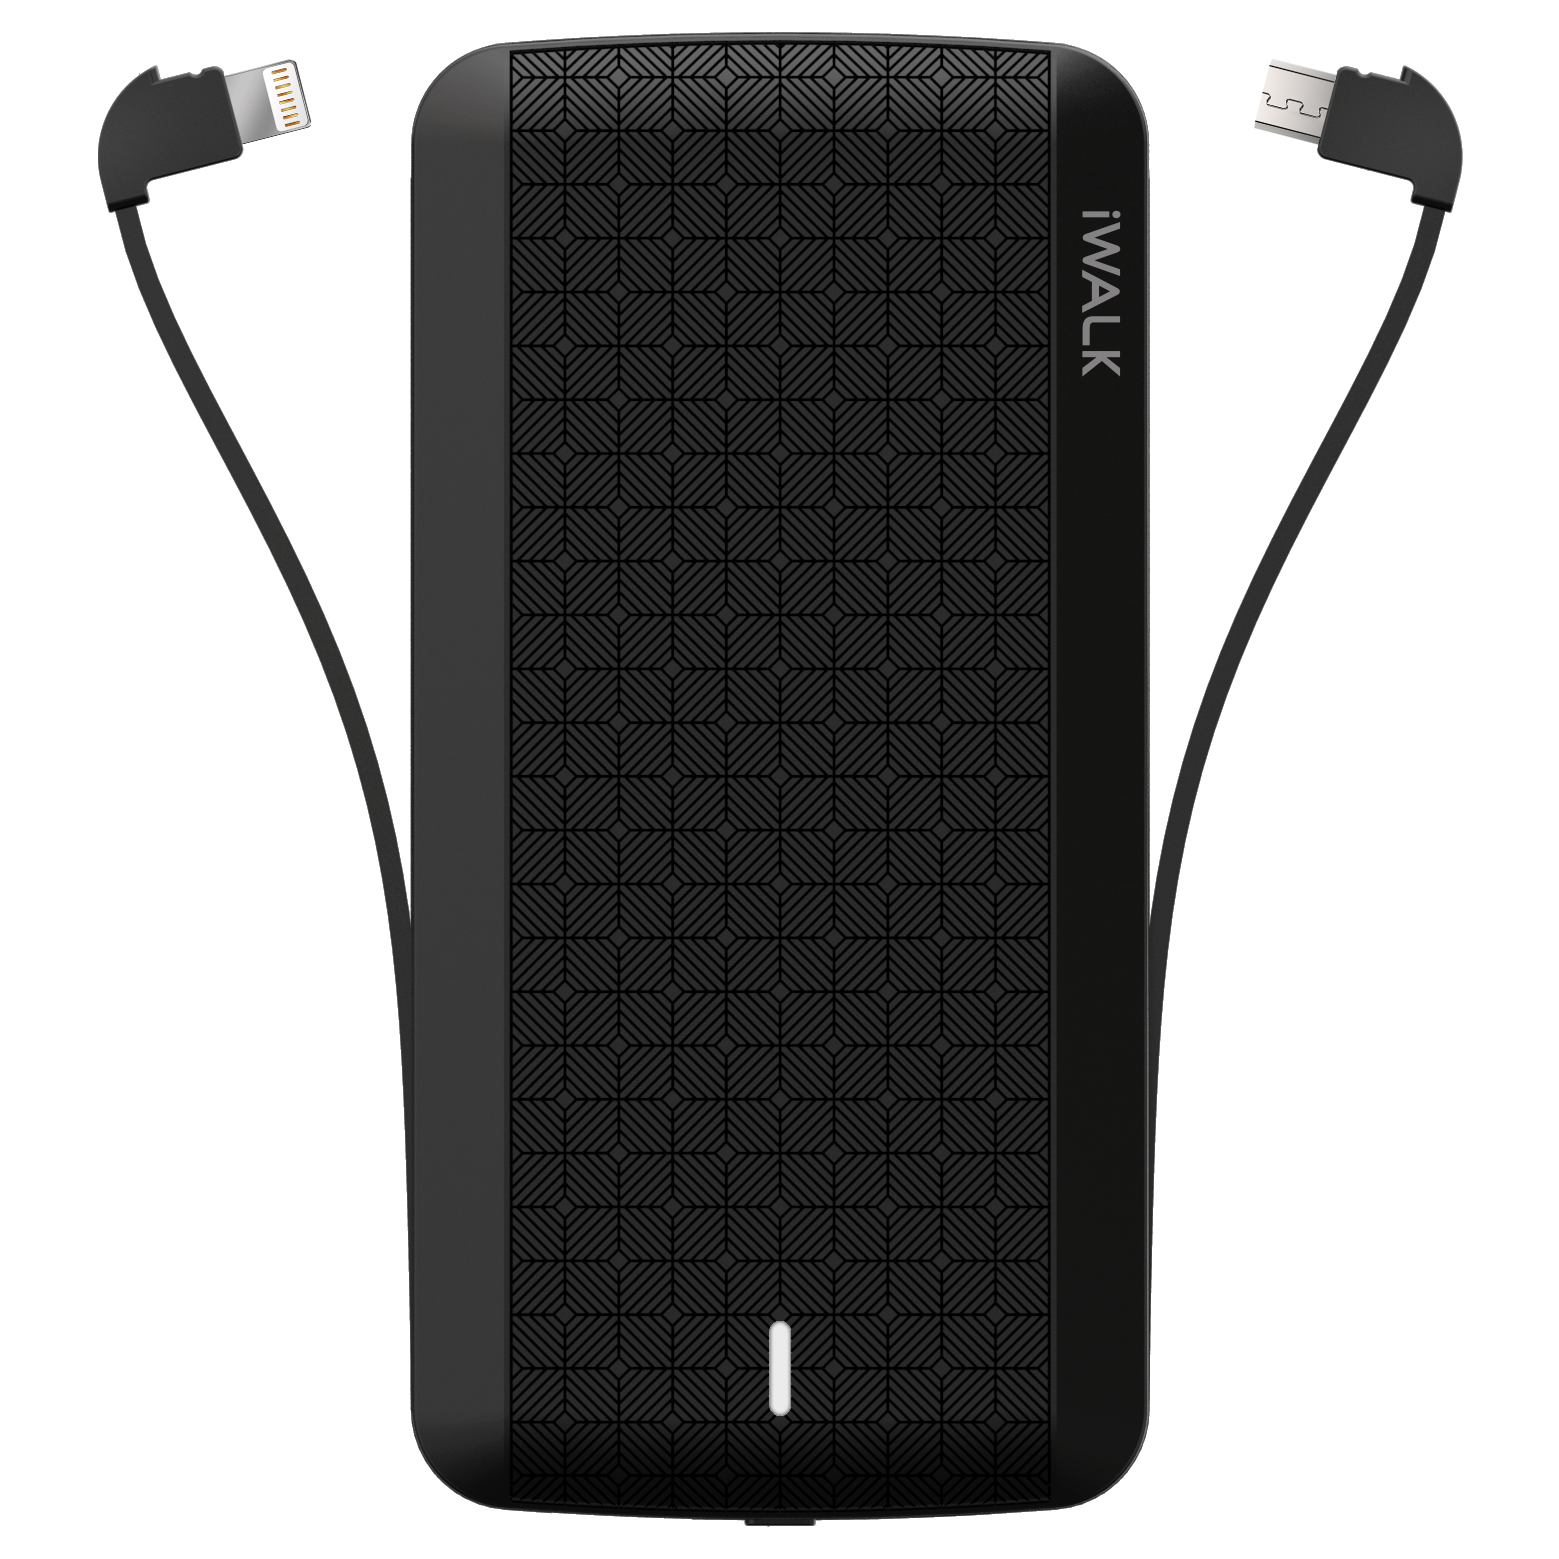 Black Powerbank with Lightning and Micro-USB cables